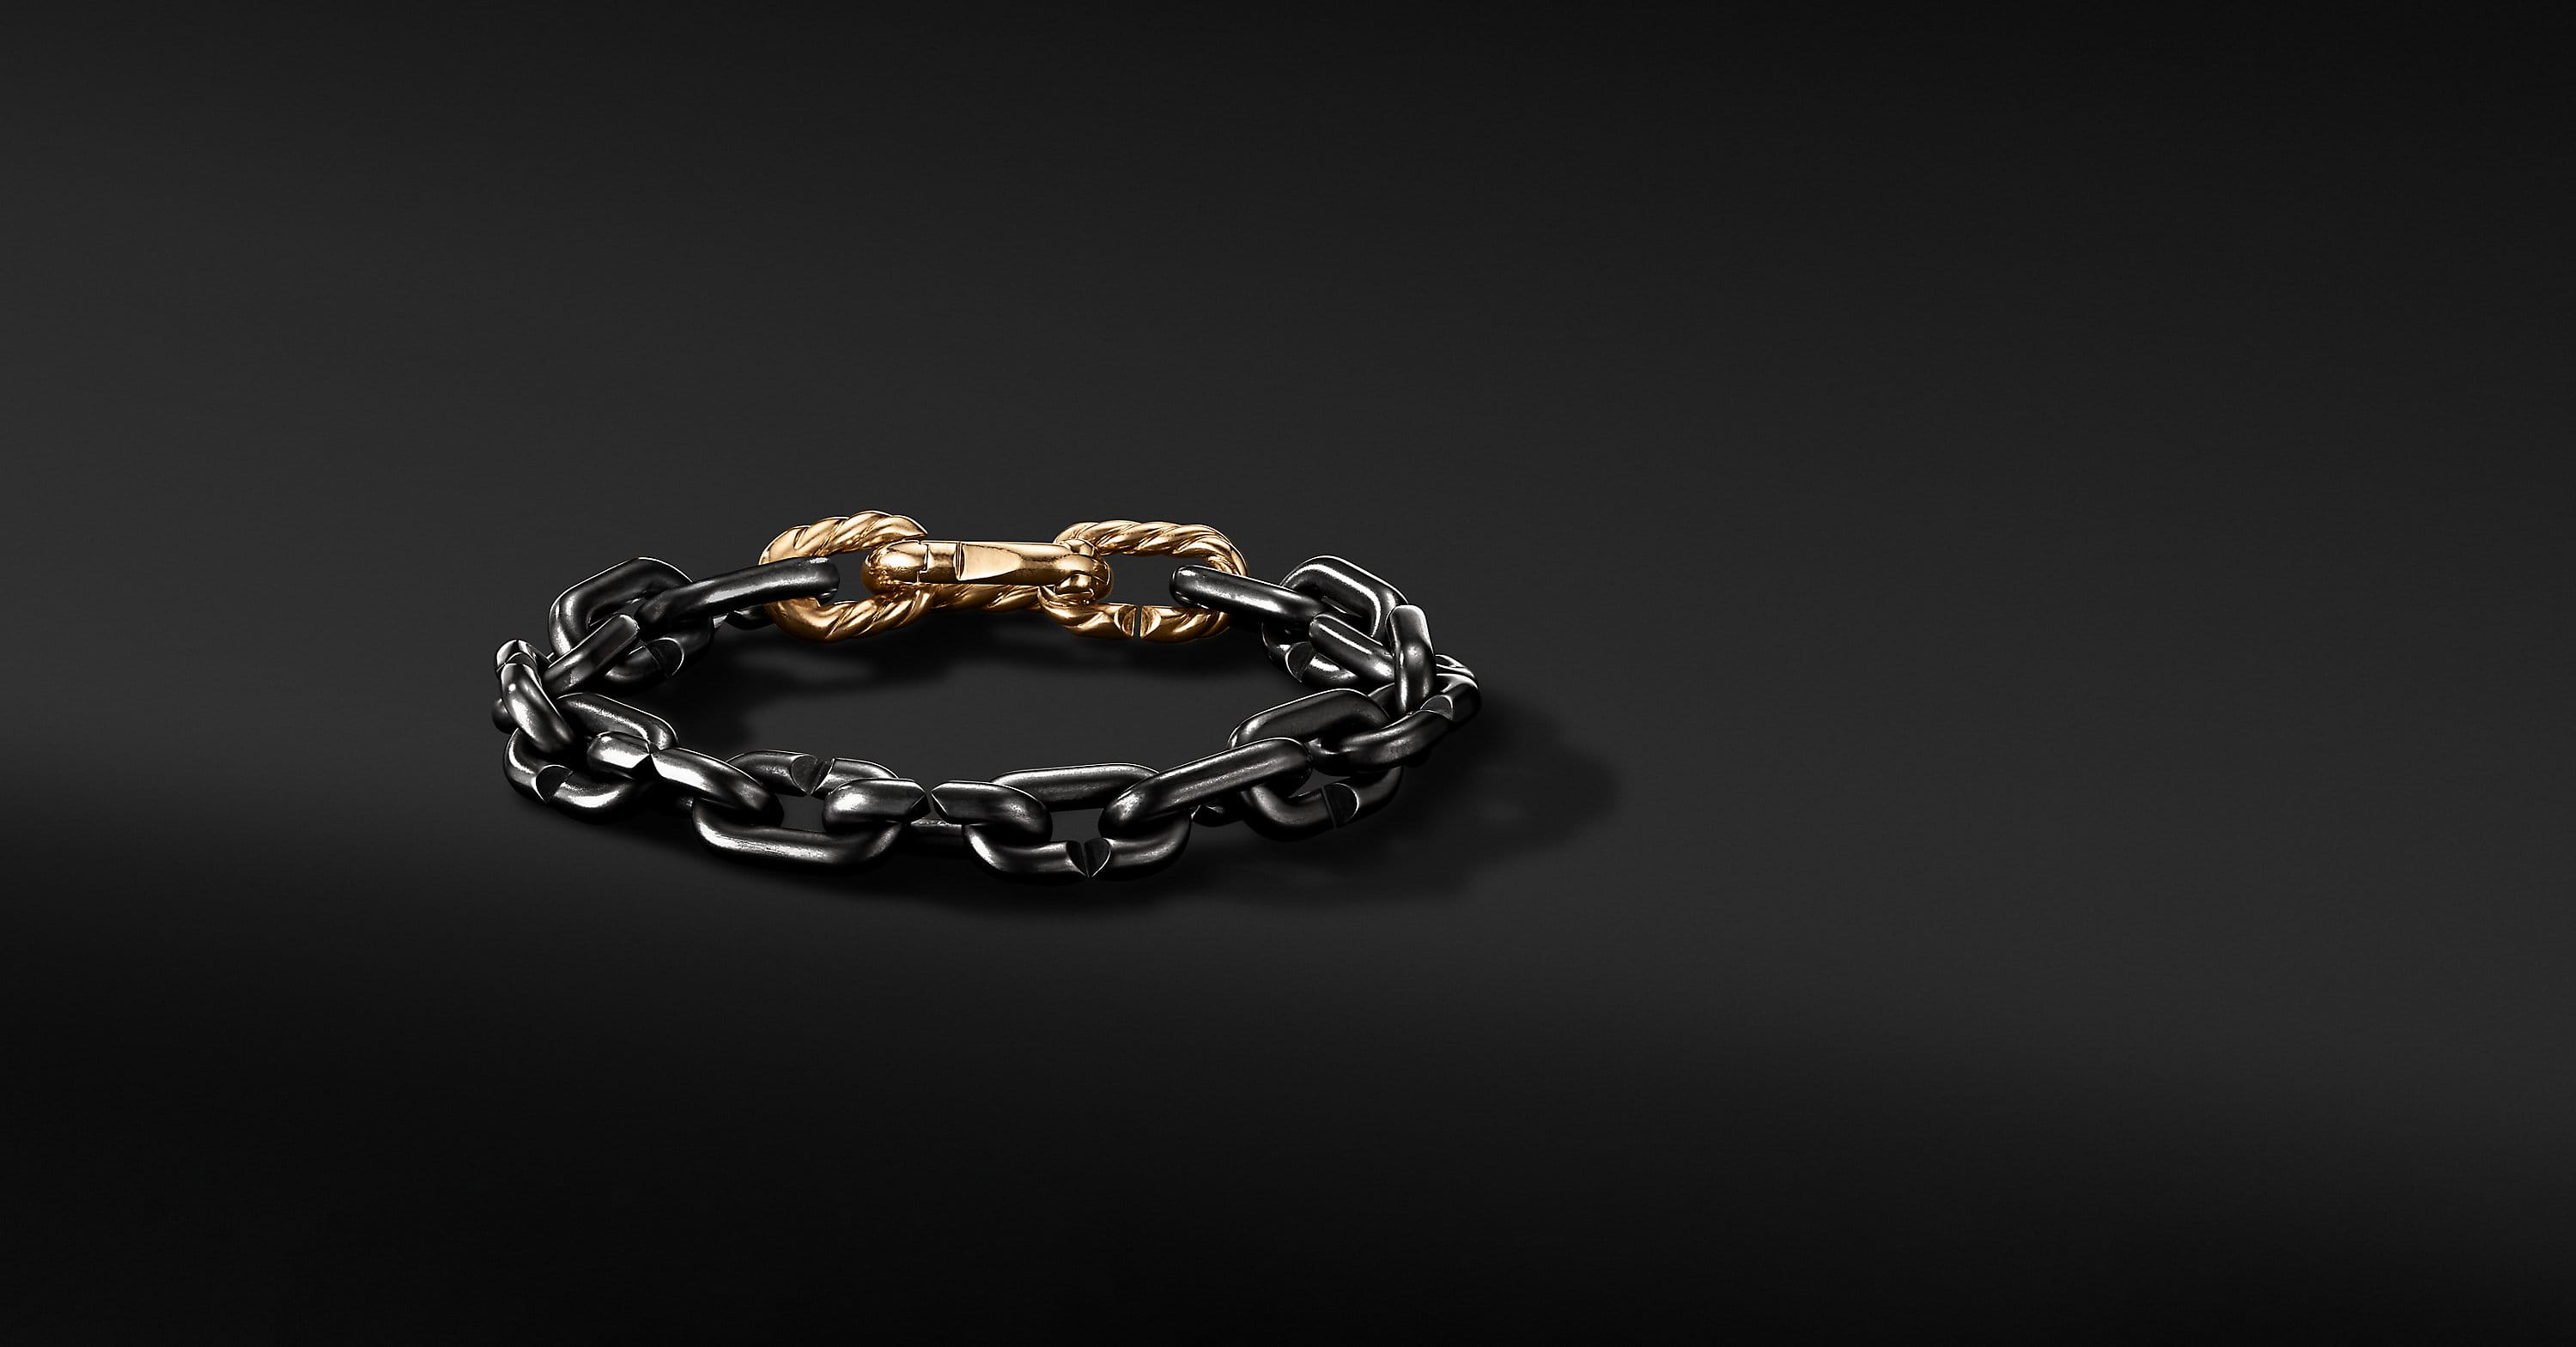 Cable Link Chain Bracelet in Black Titanium with 18K Yellow Gold, 10mm